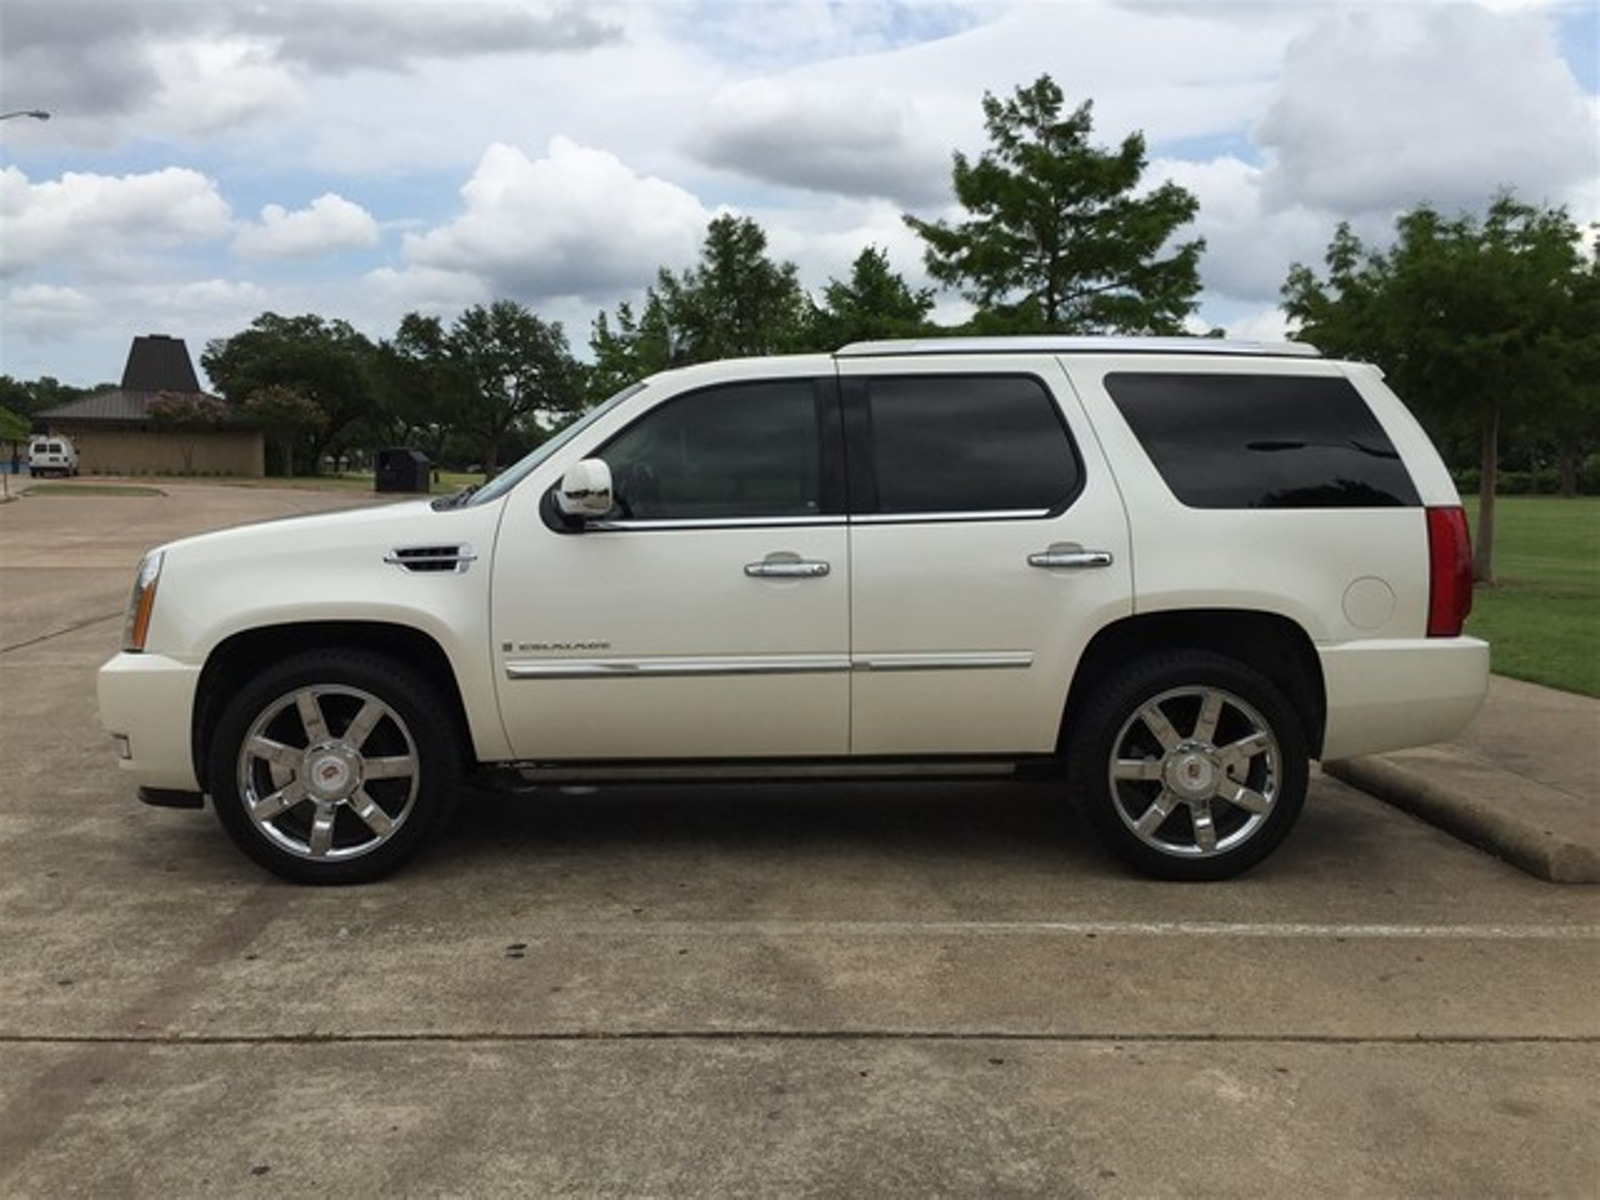 l salvage copart lot title austin vin auction online en auctions carfinder vehicle escalade ended tx for sale on auto cadillac